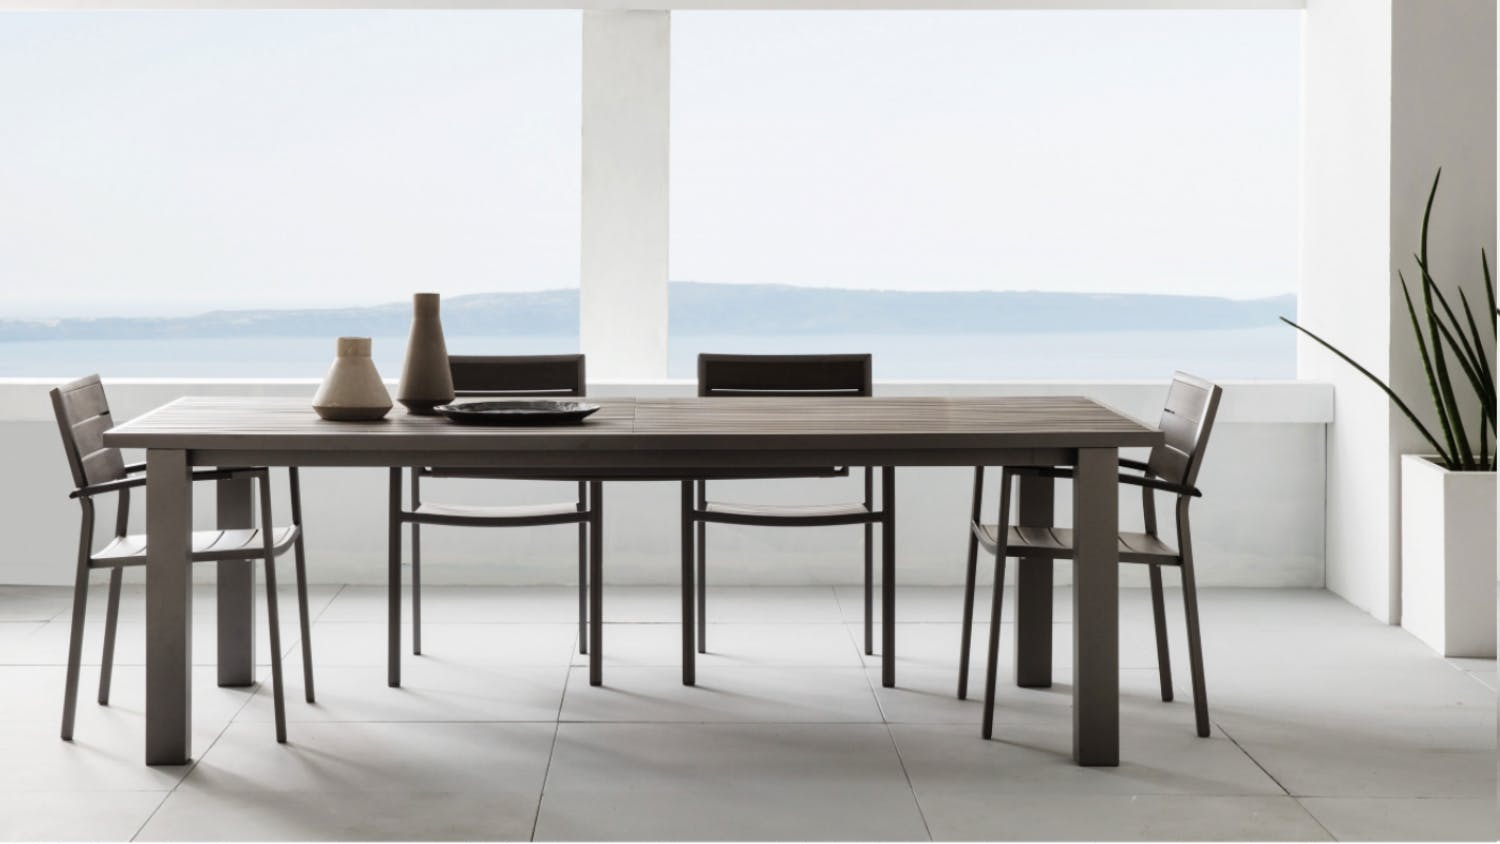 Domayne Outdoor Dining Tables | Brokeasshome.com